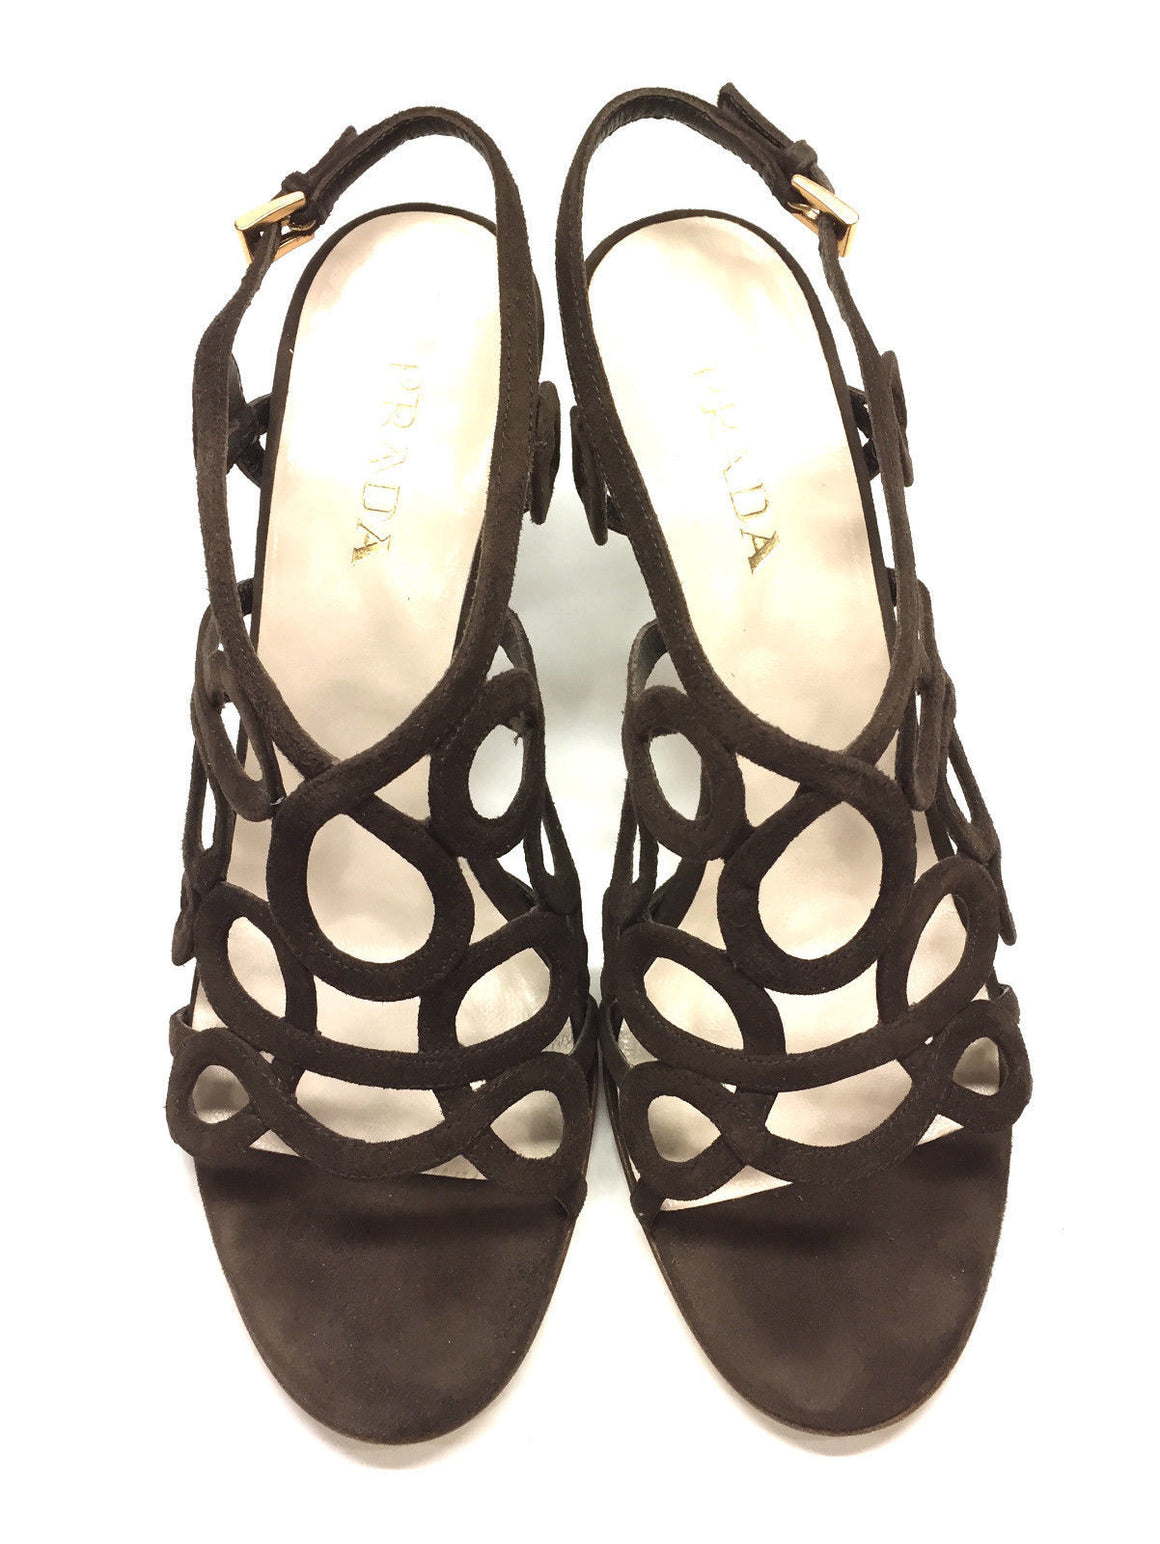 bisbiz.com PRADA   Brown Suede Scrolled Straps Cage Slingback  Heel Sandals Shoes  Size: 7.5 - Bis Luxury Resale